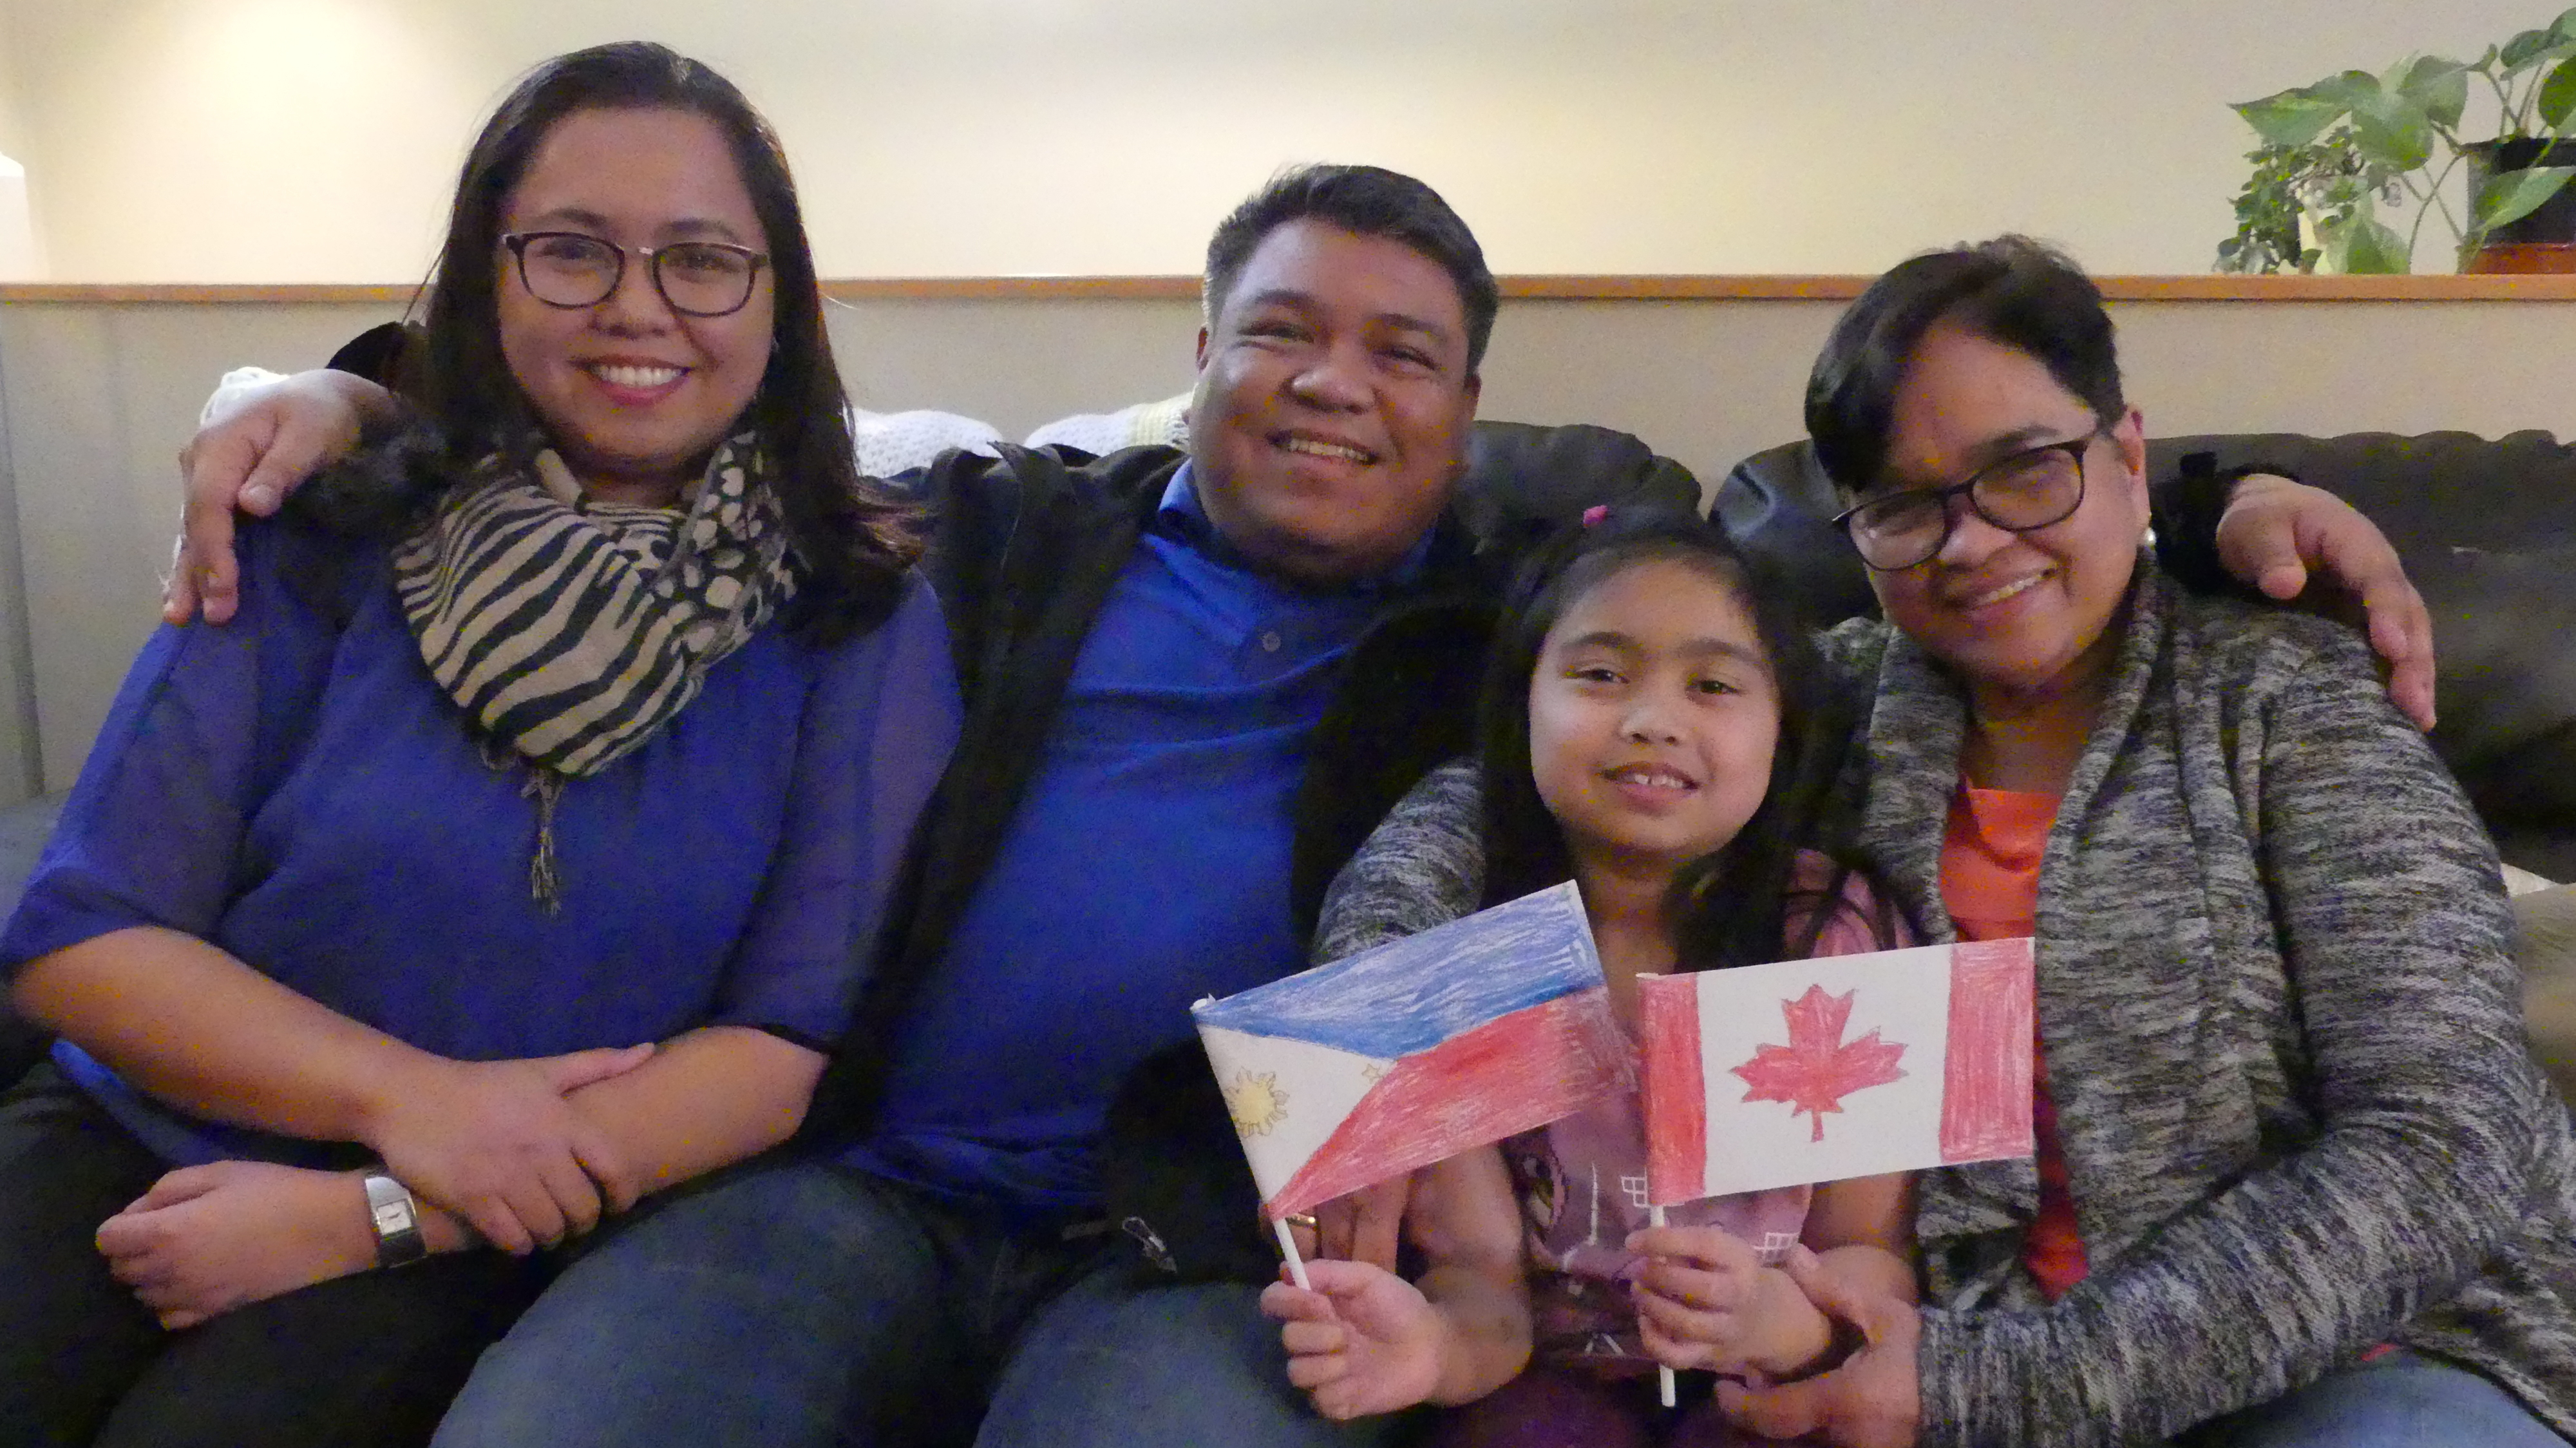 Peegy Ontong sits with her husband, Krispin, their seven-year-old daughter, Lexie, and Kris's mother, Angelita, in their shared home in Steinbach, Man. They've all lived together since Angelita moved to Canada, sponsored by Peegy, in 2017.